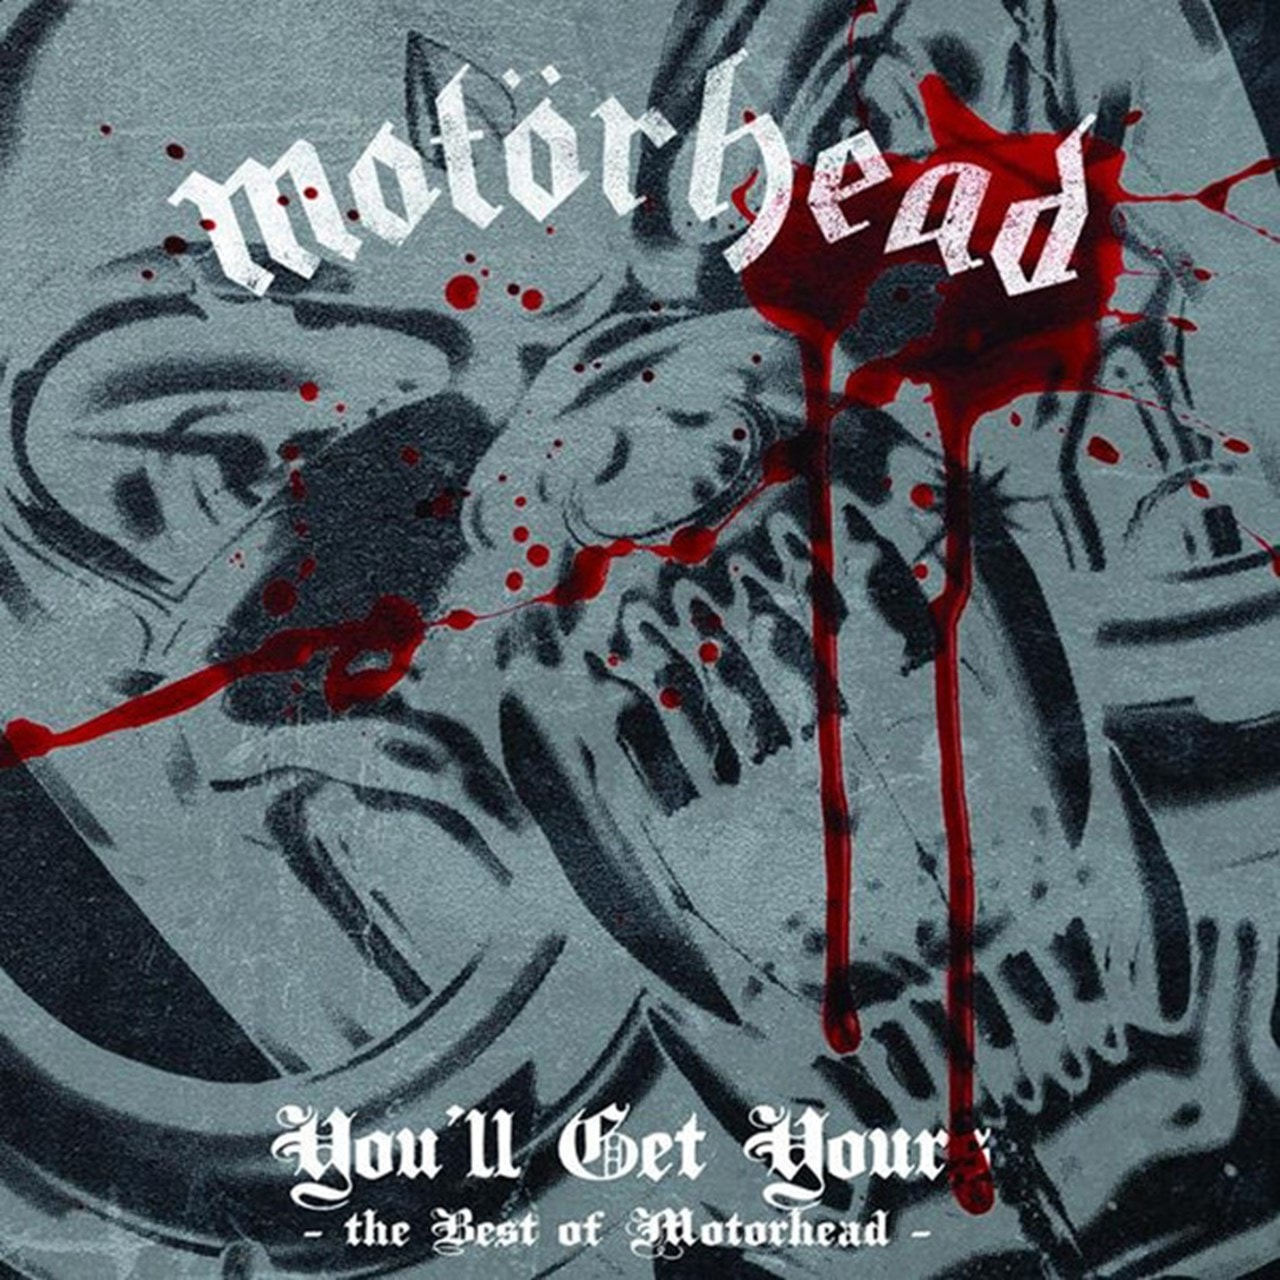 You'll Get Yours: The Best of Motorhead - 1